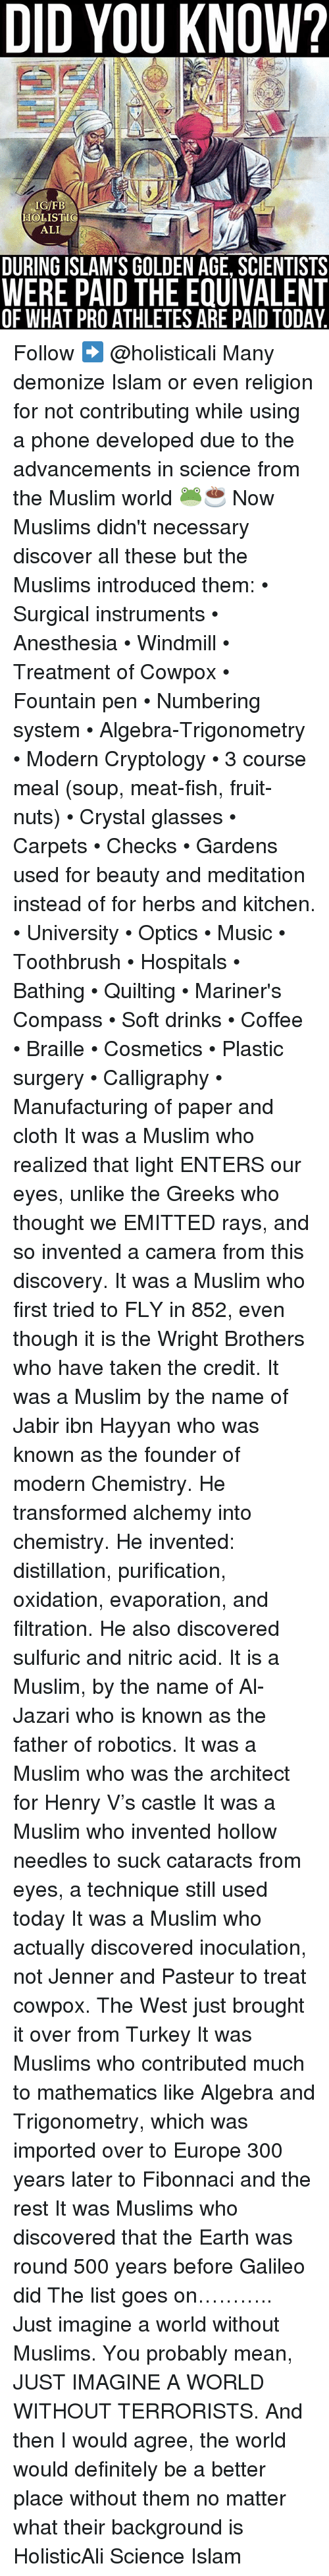 anesthesia: DID YOU KNOW?  IG/FB  HOLISTIG  ALI  DURING ISLAM'S GOLDEN AGE, SCIENTISTS  WERE PAID THE EQUIVALENT  OF WHAT PROATHLETES ARE PAID TODAY. Follow ➡️ @holisticali Many demonize Islam or even religion for not contributing while using a phone developed due to the advancements in science from the Muslim world 🐸☕️ Now Muslims didn't necessary discover all these but the Muslims introduced them: • Surgical instruments • Anesthesia • Windmill • Treatment of Cowpox • Fountain pen • Numbering system • Algebra-Trigonometry • Modern Cryptology • 3 course meal (soup, meat-fish, fruit-nuts) • Crystal glasses • Carpets • Checks • Gardens used for beauty and meditation instead of for herbs and kitchen. • University • Optics • Music • Toothbrush • Hospitals • Bathing • Quilting • Mariner's Compass • Soft drinks • Coffee • Braille • Cosmetics • Plastic surgery • Calligraphy • Manufacturing of paper and cloth It was a Muslim who realized that light ENTERS our eyes, unlike the Greeks who thought we EMITTED rays, and so invented a camera from this discovery. It was a Muslim who first tried to FLY in 852, even though it is the Wright Brothers who have taken the credit. It was a Muslim by the name of Jabir ibn Hayyan who was known as the founder of modern Chemistry. He transformed alchemy into chemistry. He invented: distillation, purification, oxidation, evaporation, and filtration. He also discovered sulfuric and nitric acid. It is a Muslim, by the name of Al-Jazari who is known as the father of robotics. It was a Muslim who was the architect for Henry V's castle It was a Muslim who invented hollow needles to suck cataracts from eyes, a technique still used today It was a Muslim who actually discovered inoculation, not Jenner and Pasteur to treat cowpox. The West just brought it over from Turkey It was Muslims who contributed much to mathematics like Algebra and Trigonometry, which was imported over to Europe 300 years later to Fibonnaci and the rest It was Muslims who discov